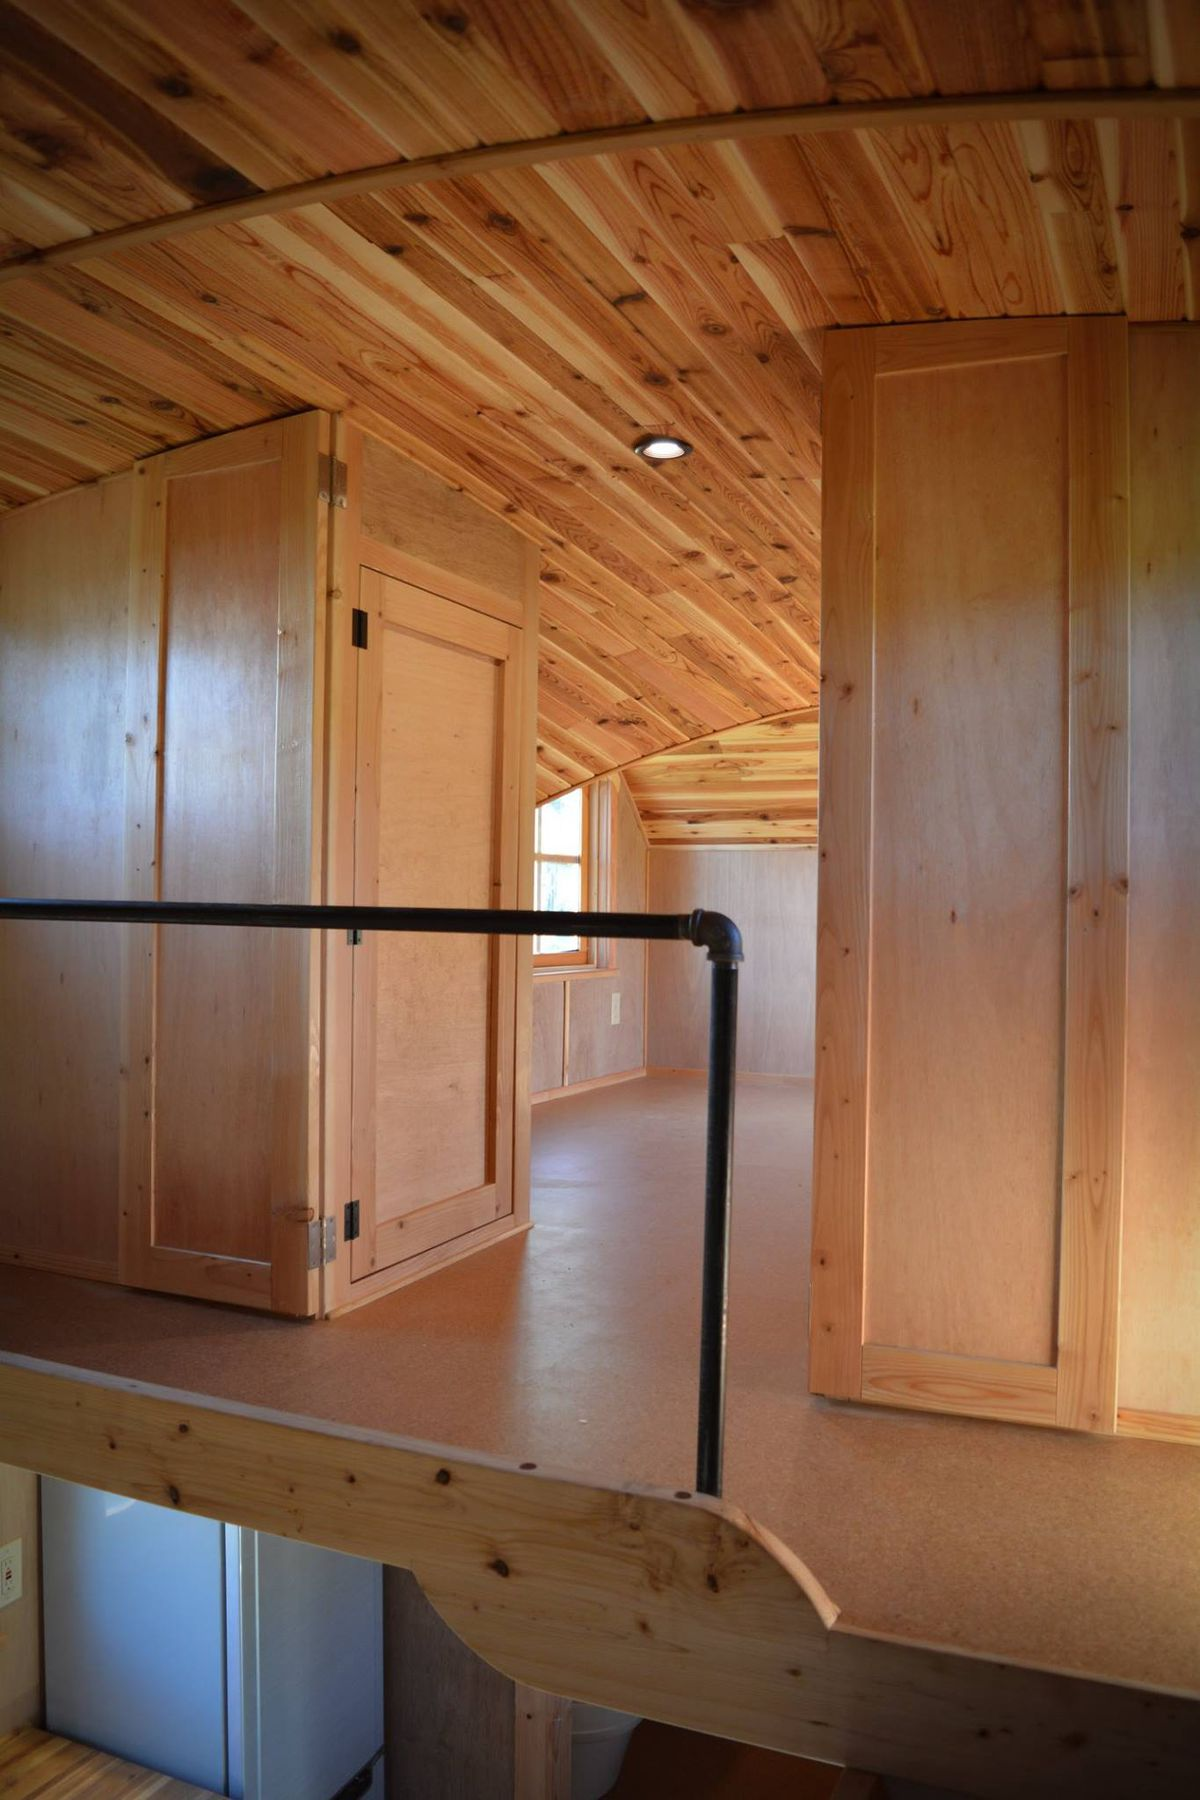 Tiny Home Designs: New Tiny House Lives Large With Extra-High Ceiling And Fun